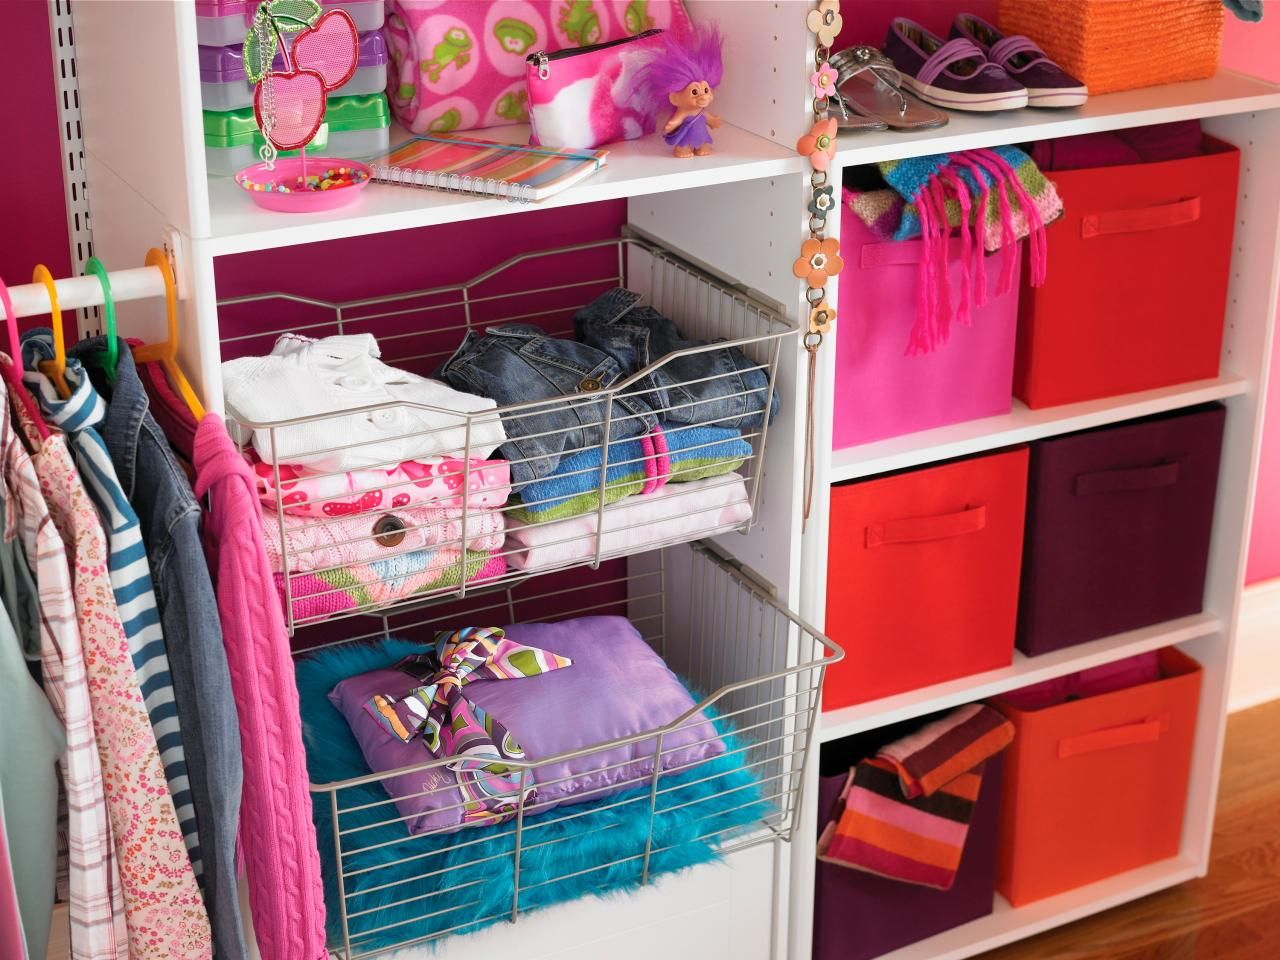 Etonnant HGTV Remodels: Expert Tips On Small Closet Organization Plus Pictures And  Ideas For Transforming A